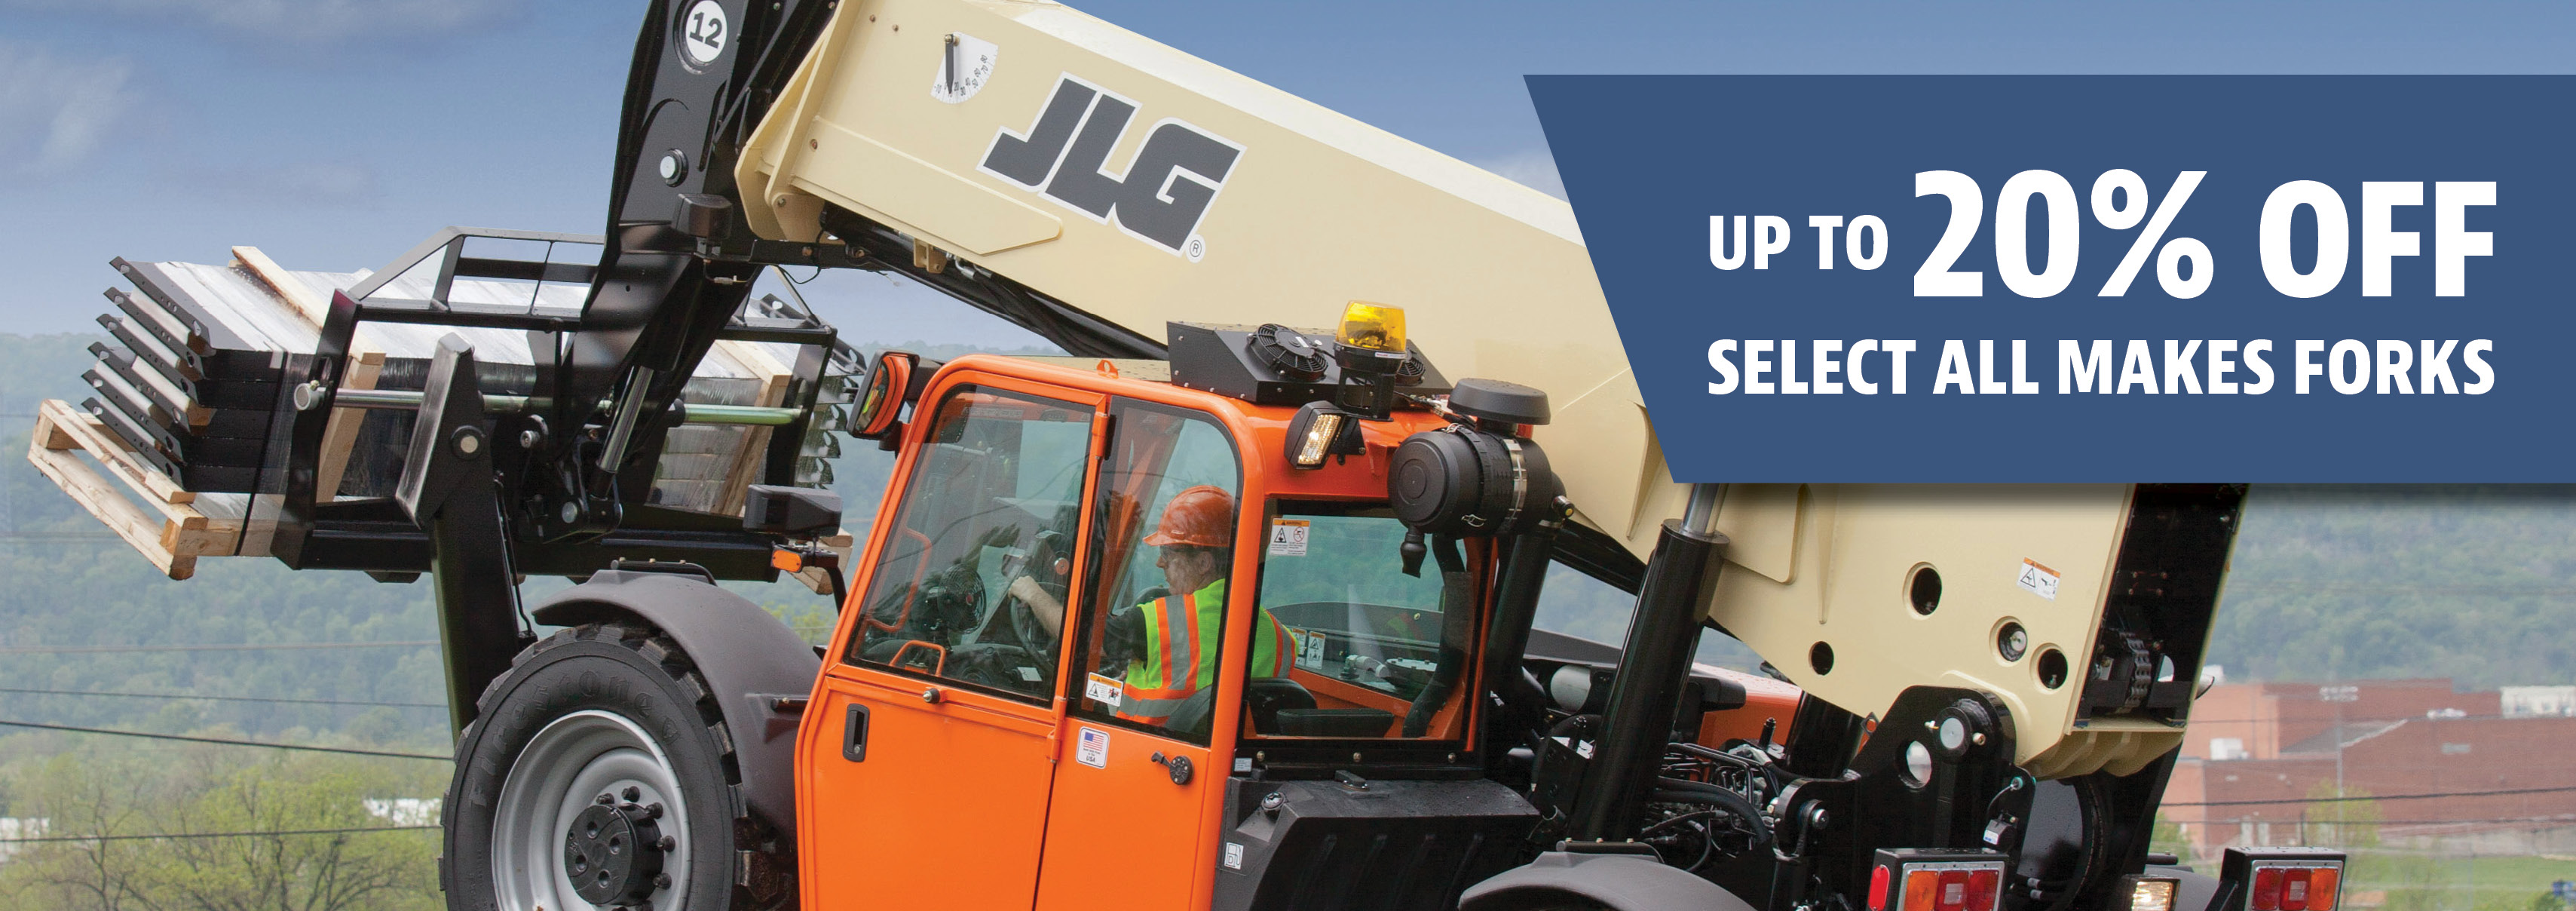 Jlg Parts Services To Keep Your Lifts Up And Running Jcb 212 Wiring Schematic The Right Fork For Job